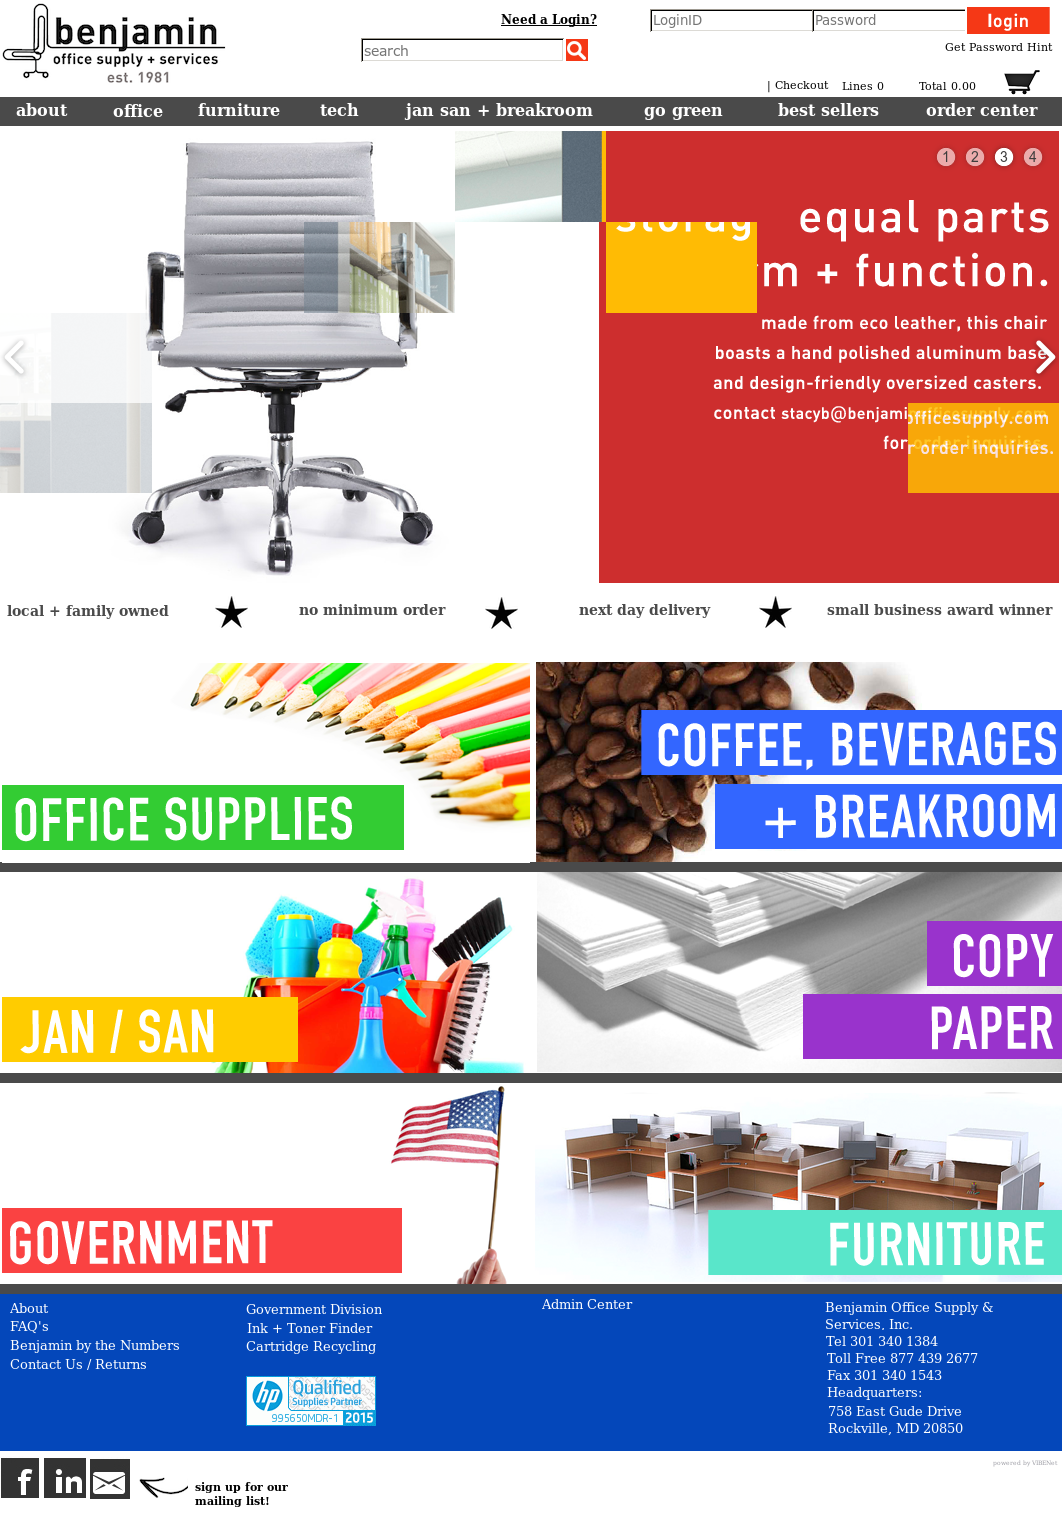 Delicieux Benjamin Office Supply U0026 Services Competitors, Revenue And Employees    Owler Company Profile